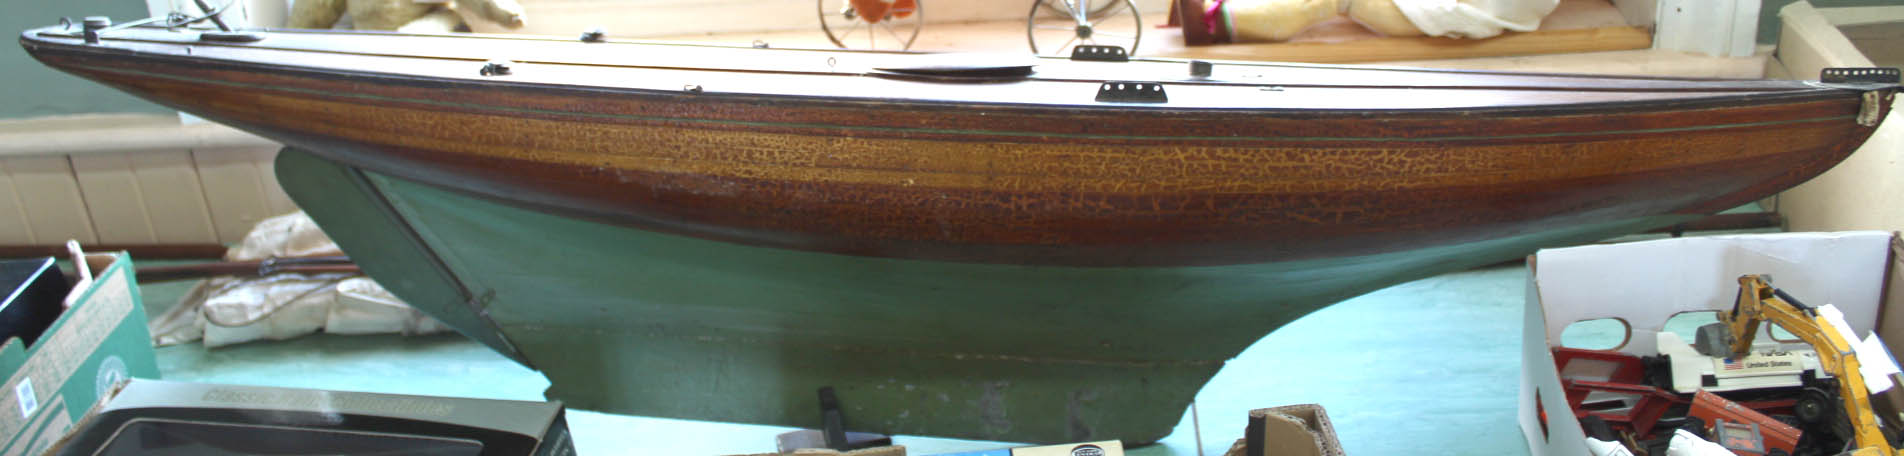 Lot 33 - A large model pond yacht and sails